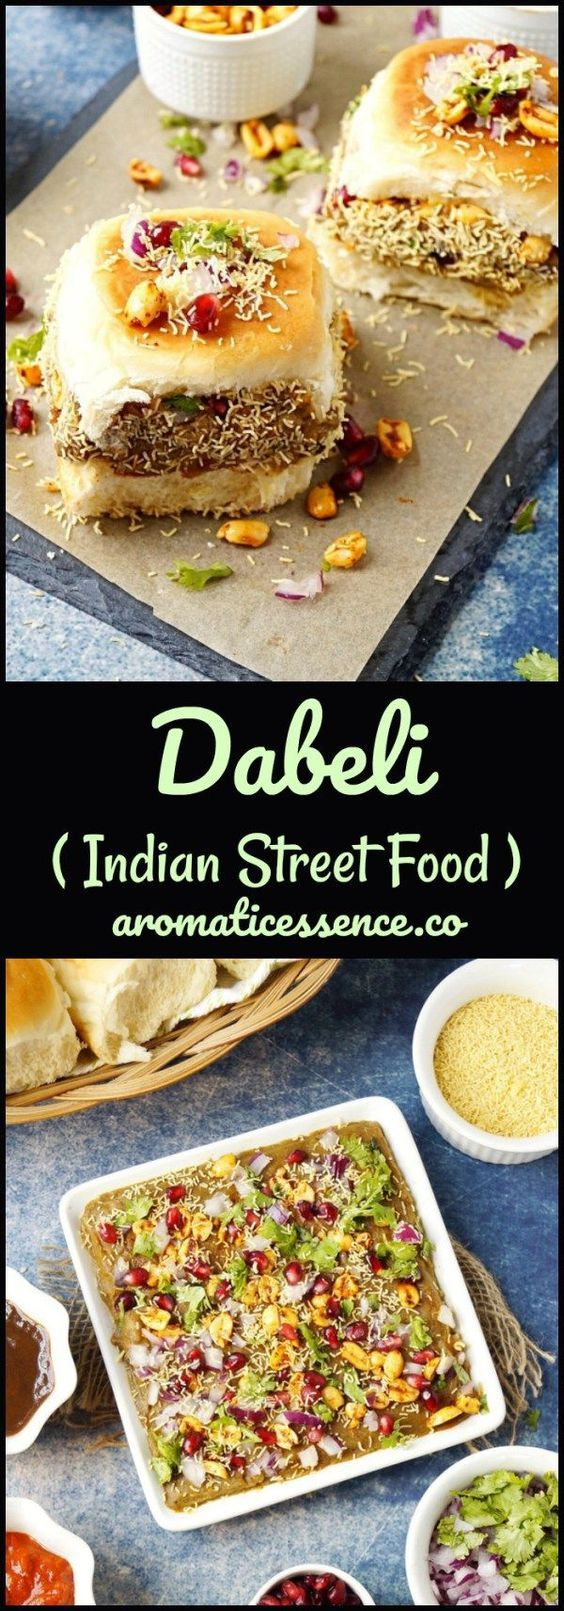 Dabeli is an Indian version of mini sliders, A bun slathered with sweet and spicy chutney's is stuffed with a sweet, spicy and tangy potato filling, topped with onions, tomatoes & other yum goodies. Layers of flavor& texture in a single bite! #dabeli #streetfood #vegetarian